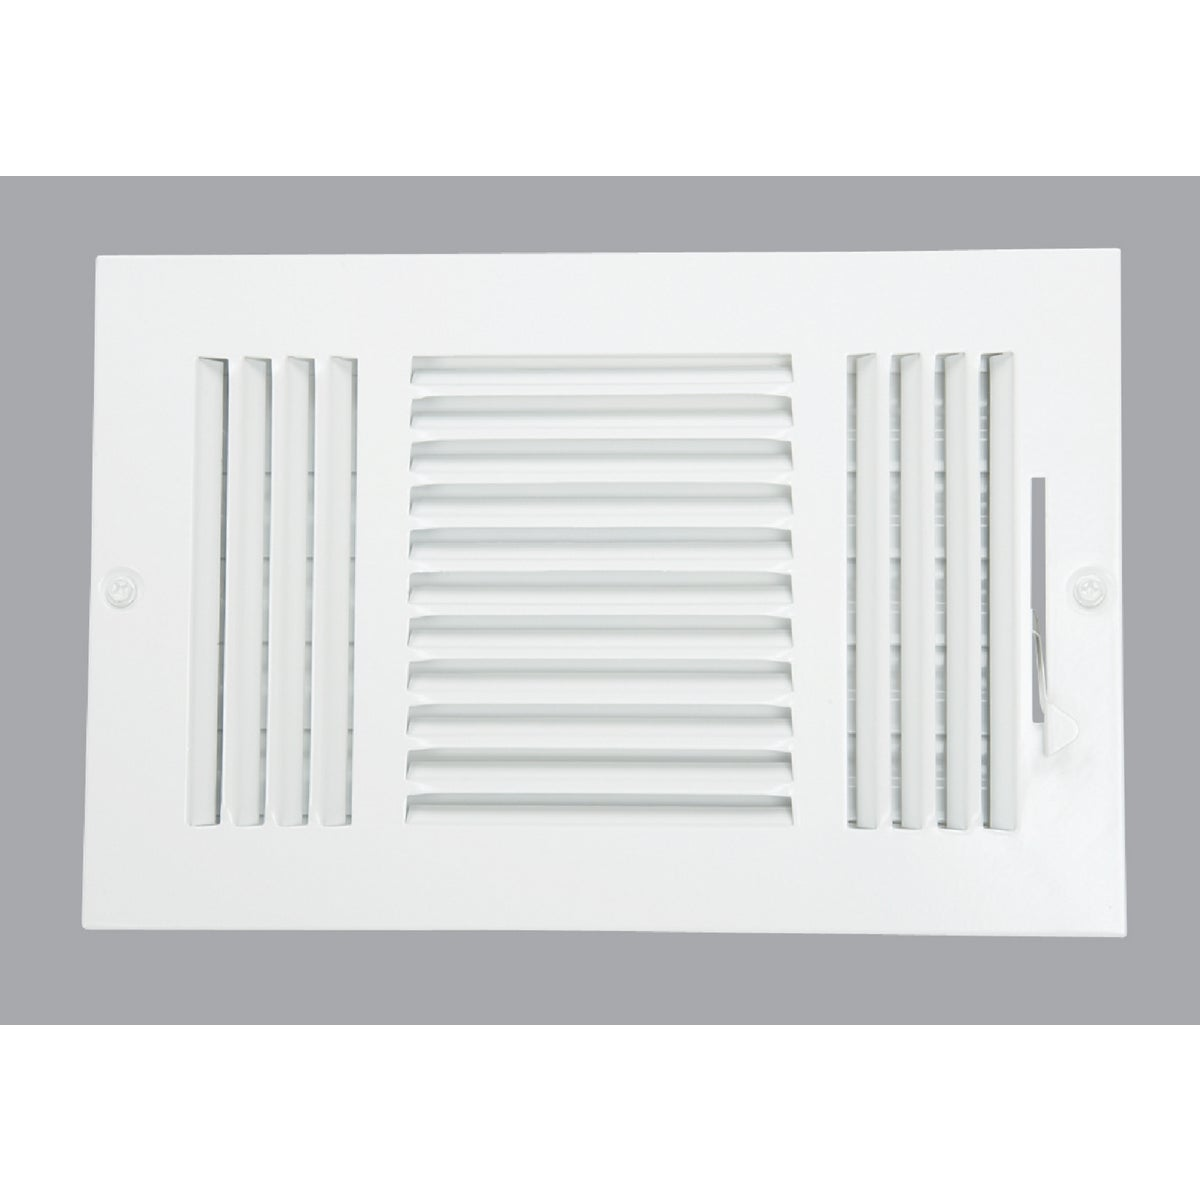 Home Impressions 3-Way Wall Register, 3SW1006WH-B